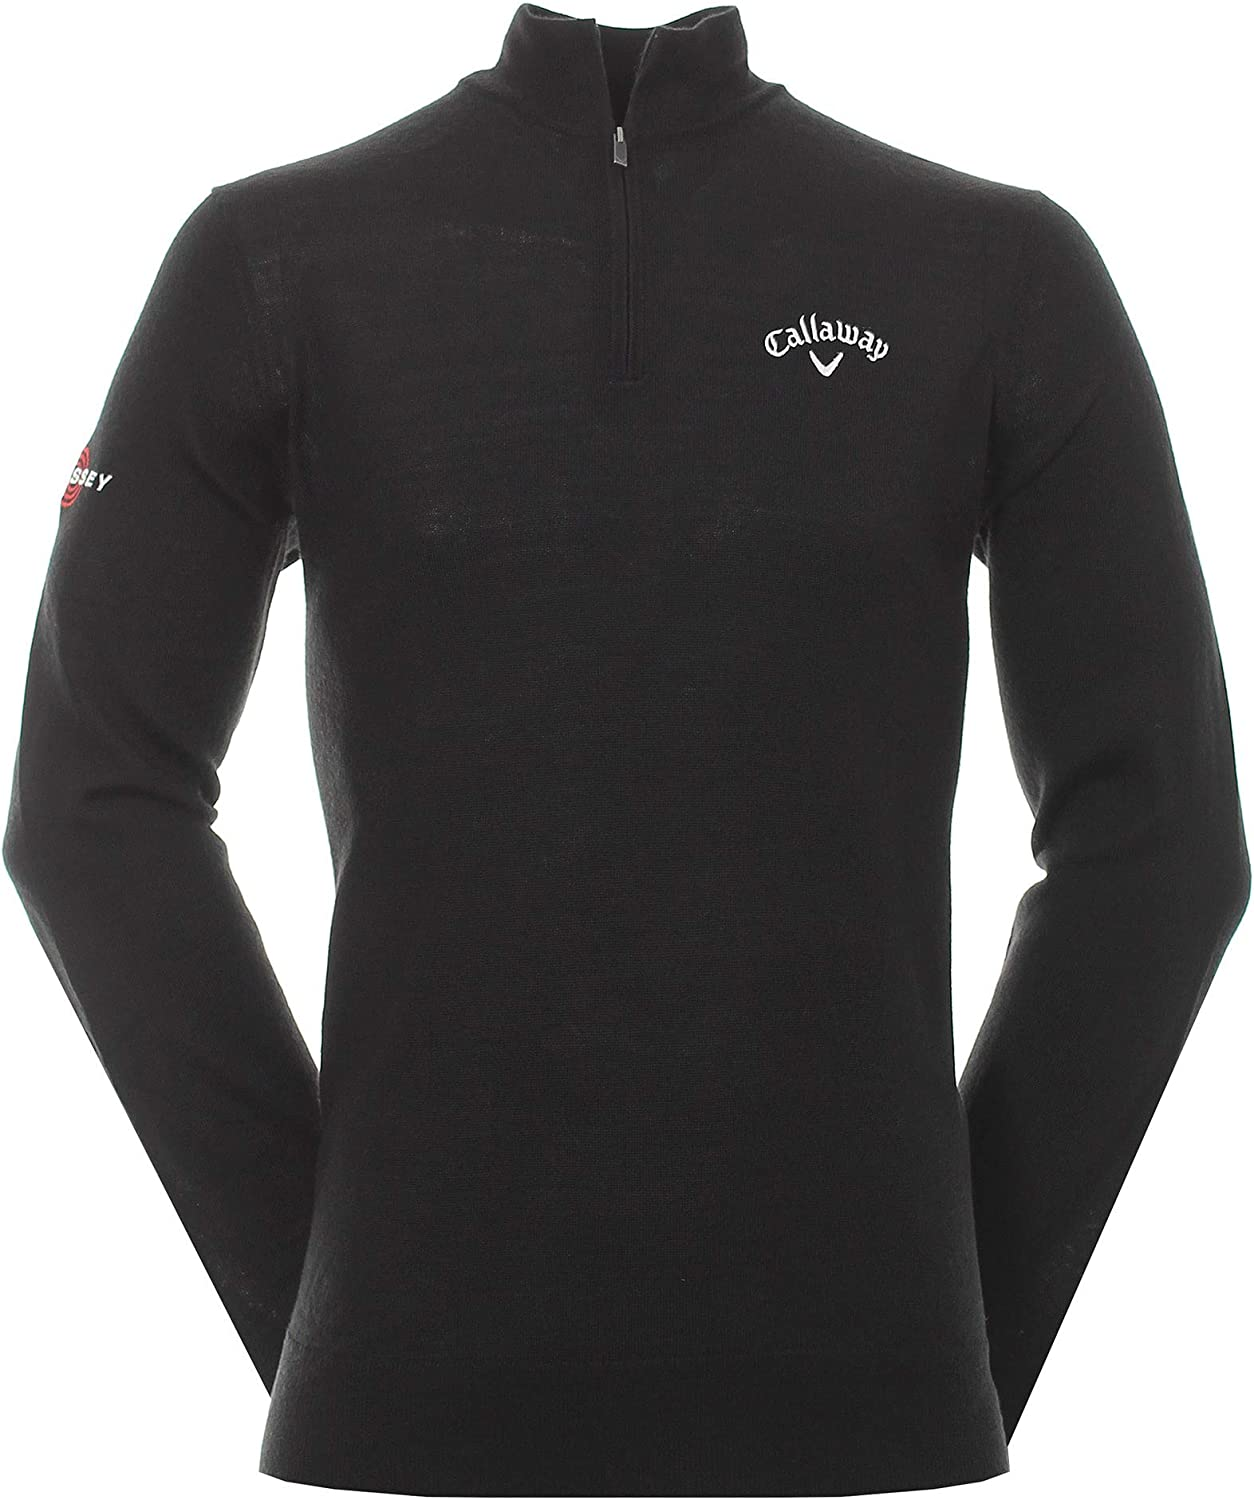 Callaway Mens Girls Jumpers